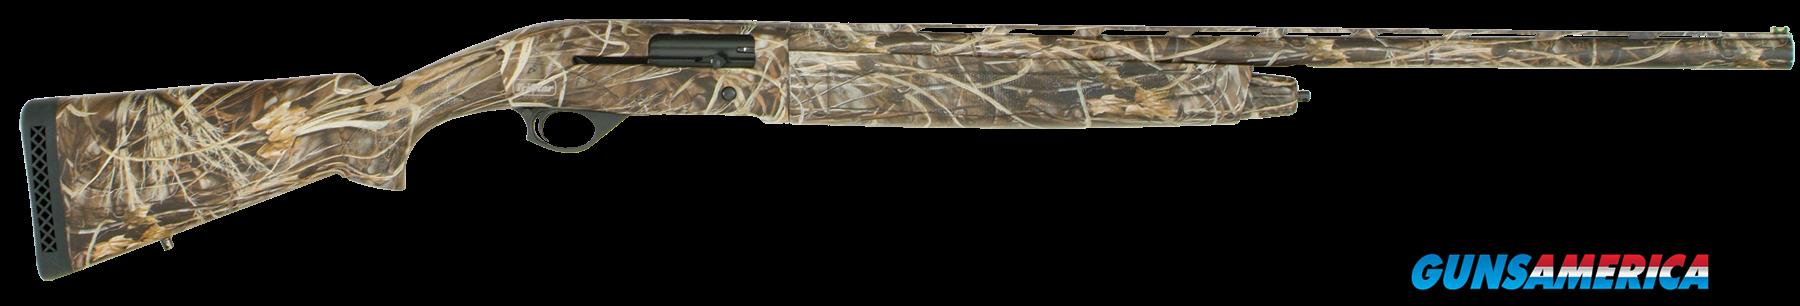 "TriStar 24140 Viper G2 Semi-Automatic 12 Gauge 28"" 3"" Realtree Max-4 Synthetic Stk Steel  Guns > Shotguns > Tristar Shotguns"